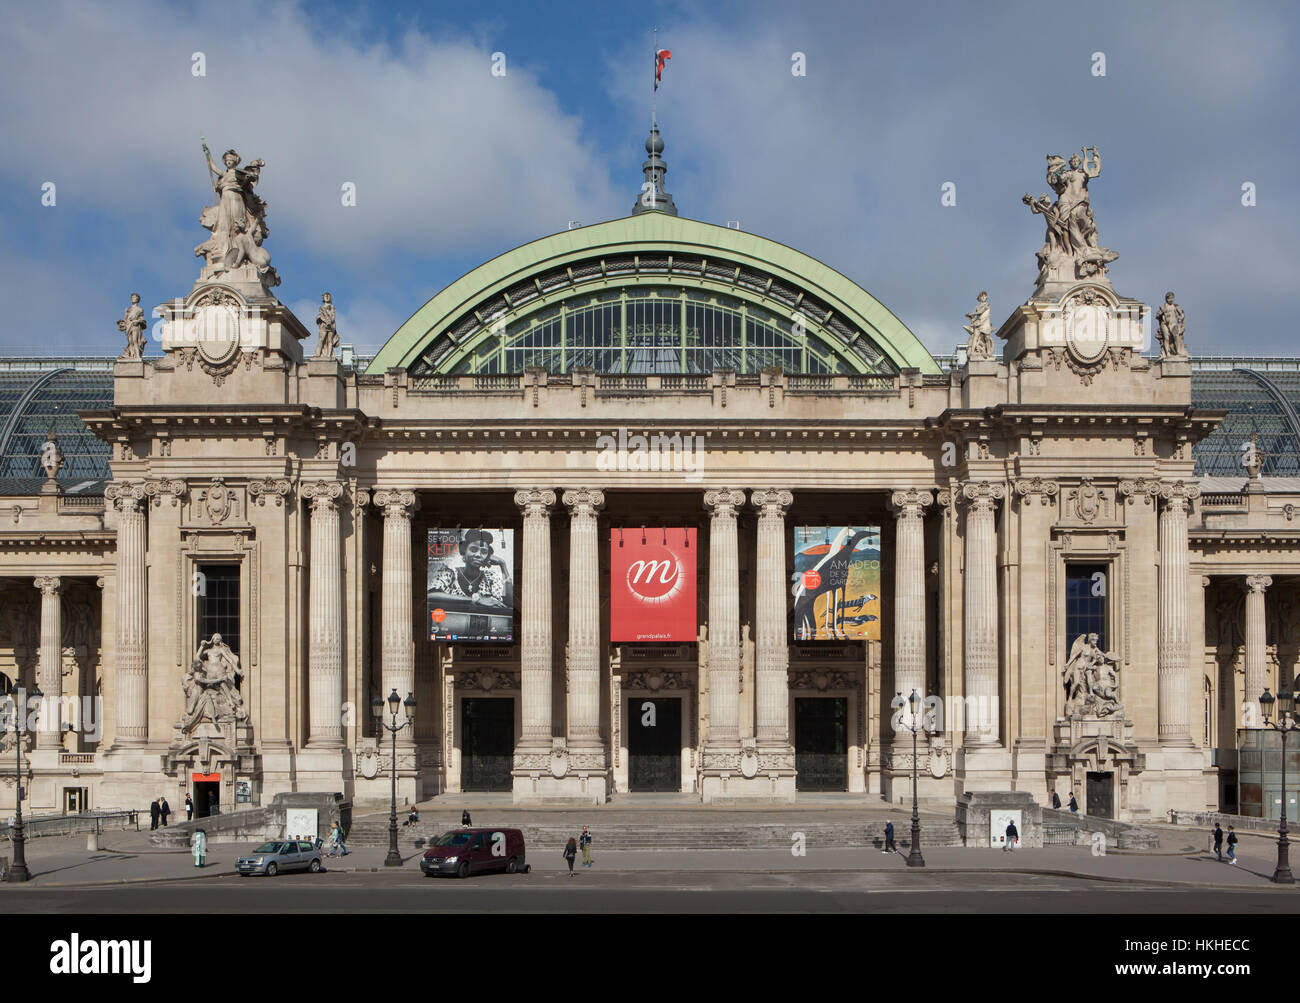 Grand Palais designed in Beaux-Arts style in Avenue des Champs-Elysees in Paris, France. Stock Photo